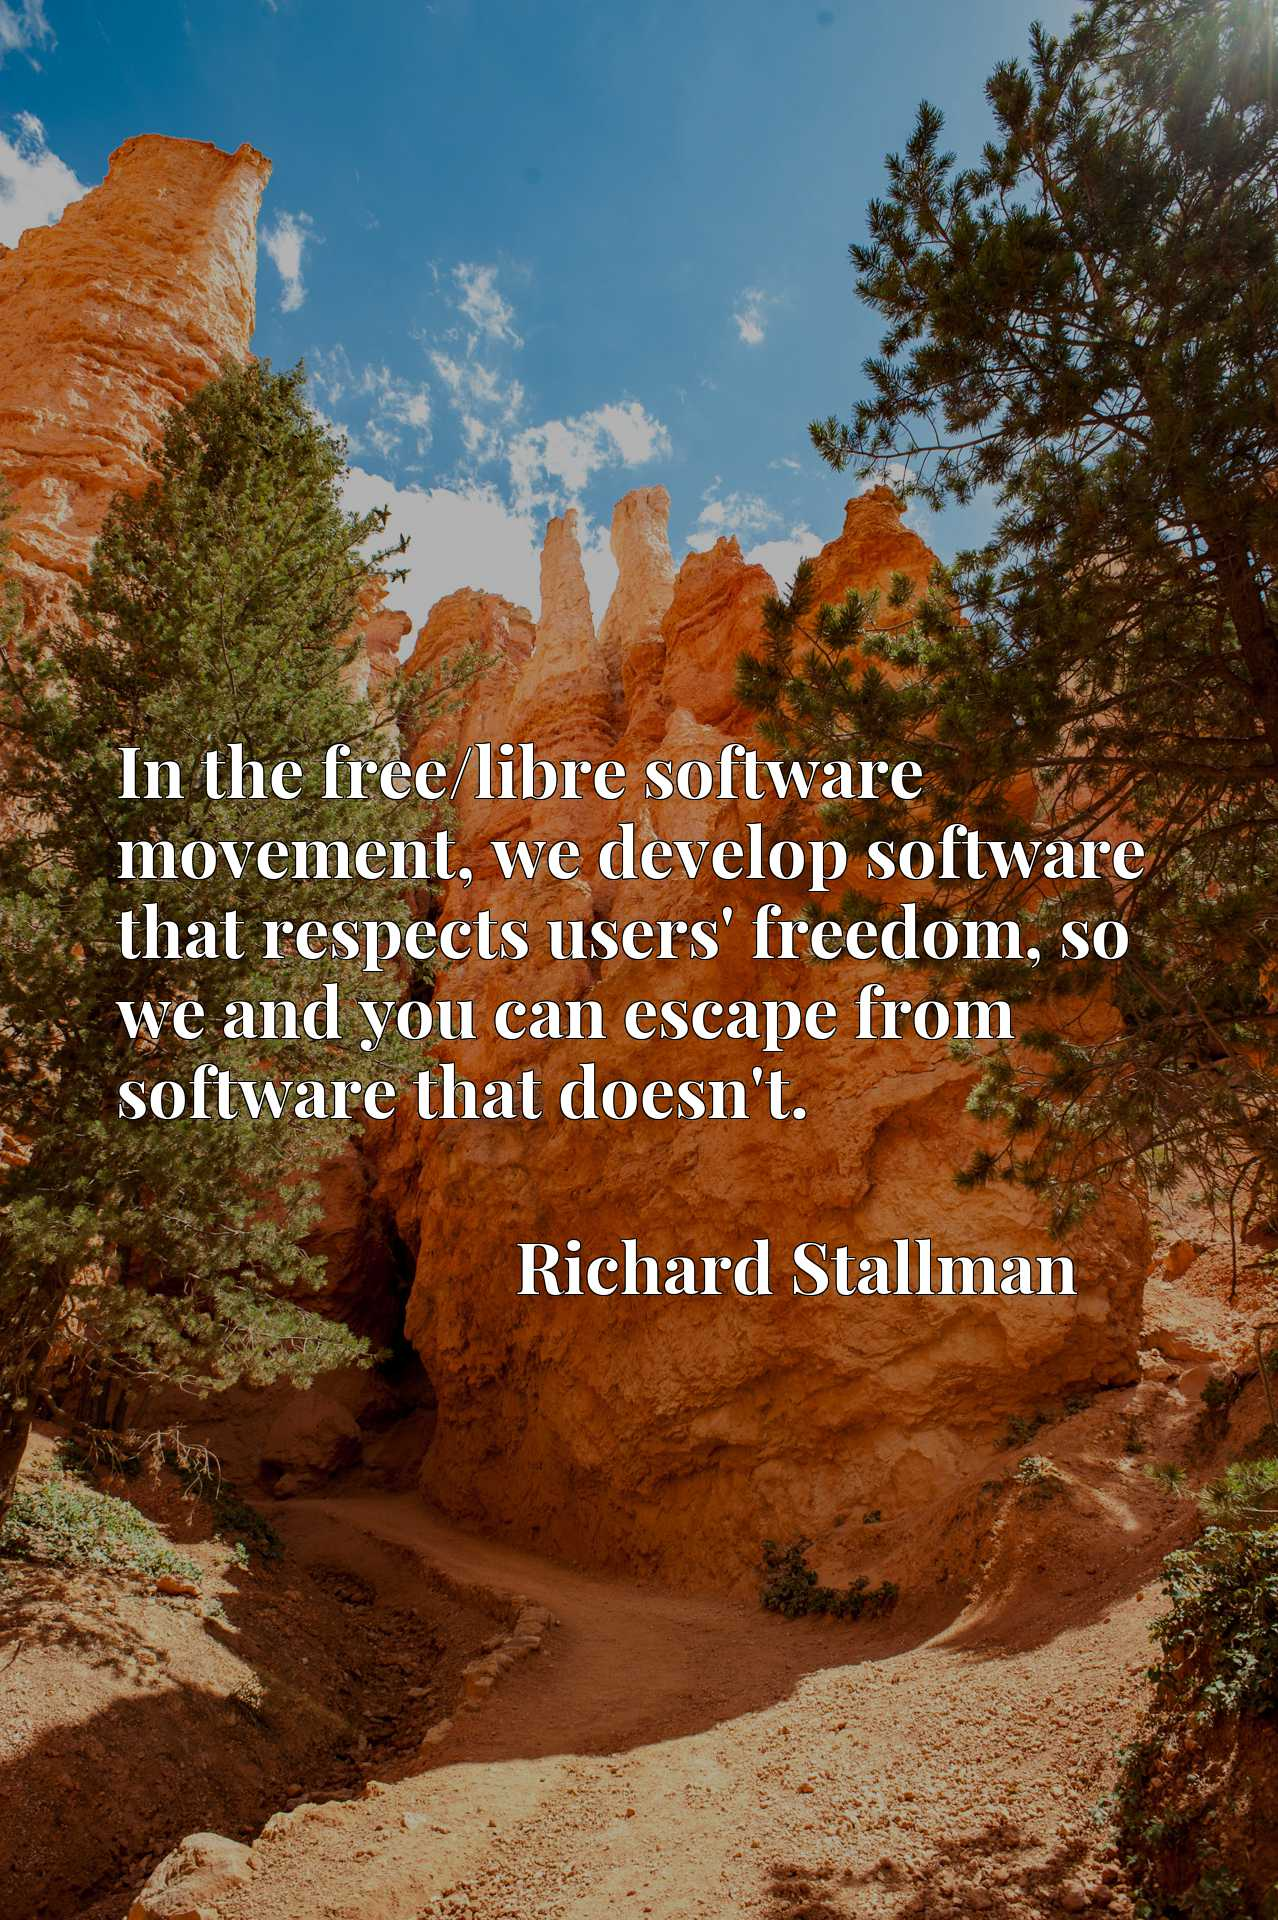 In the free/libre software movement, we develop software that respects users' freedom, so we and you can escape from software that doesn't.